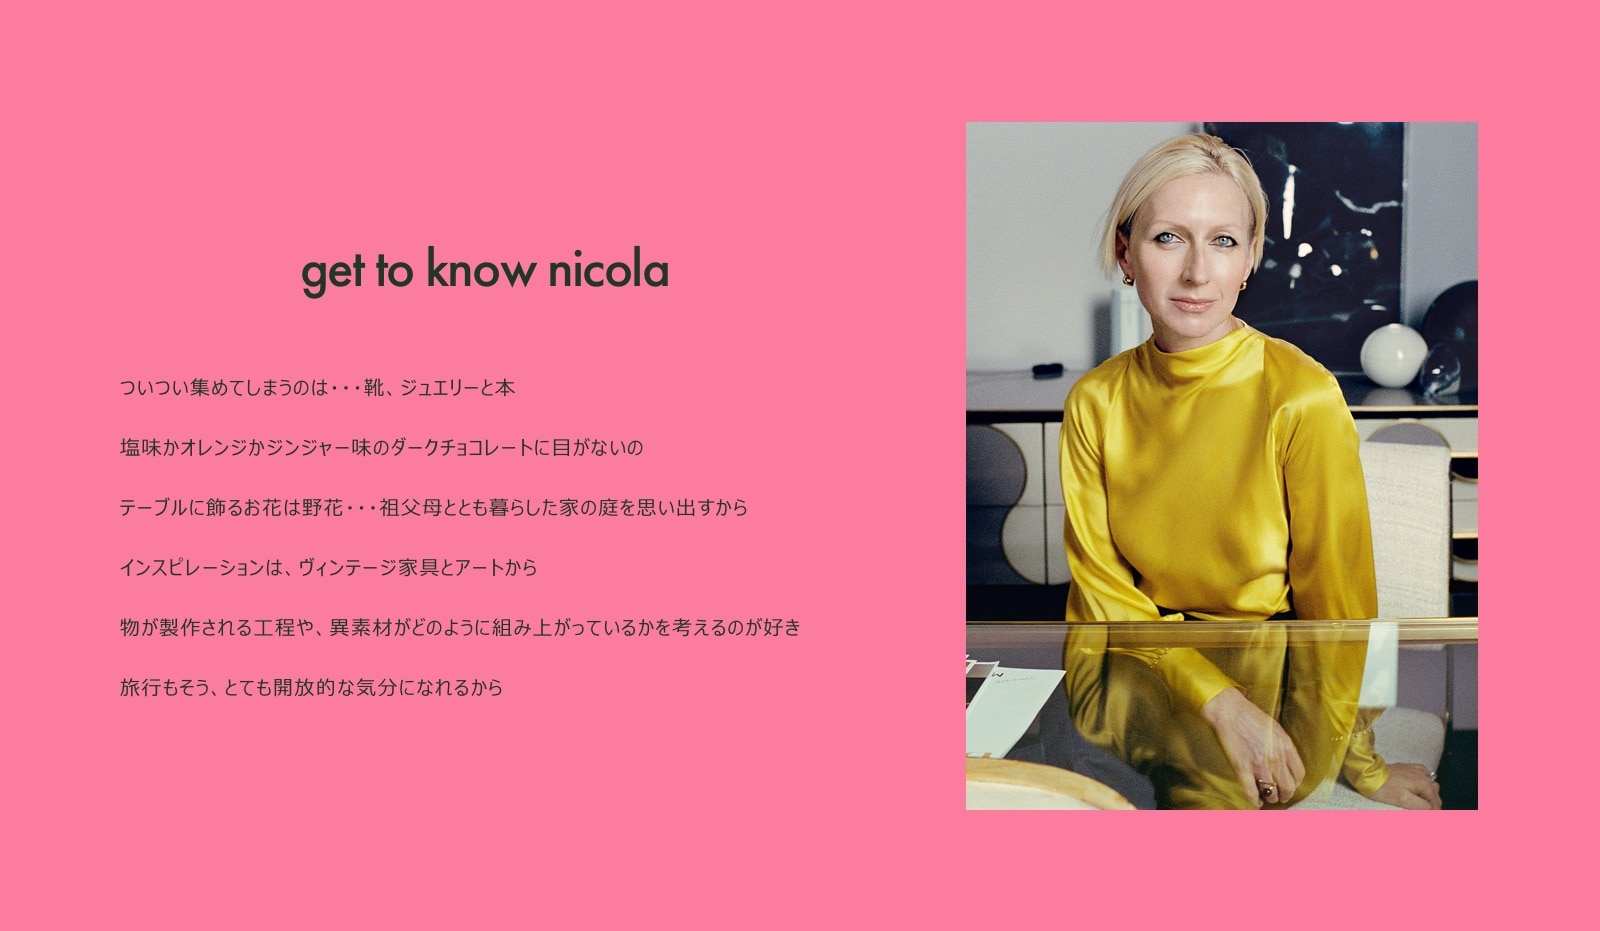 get to know nicola